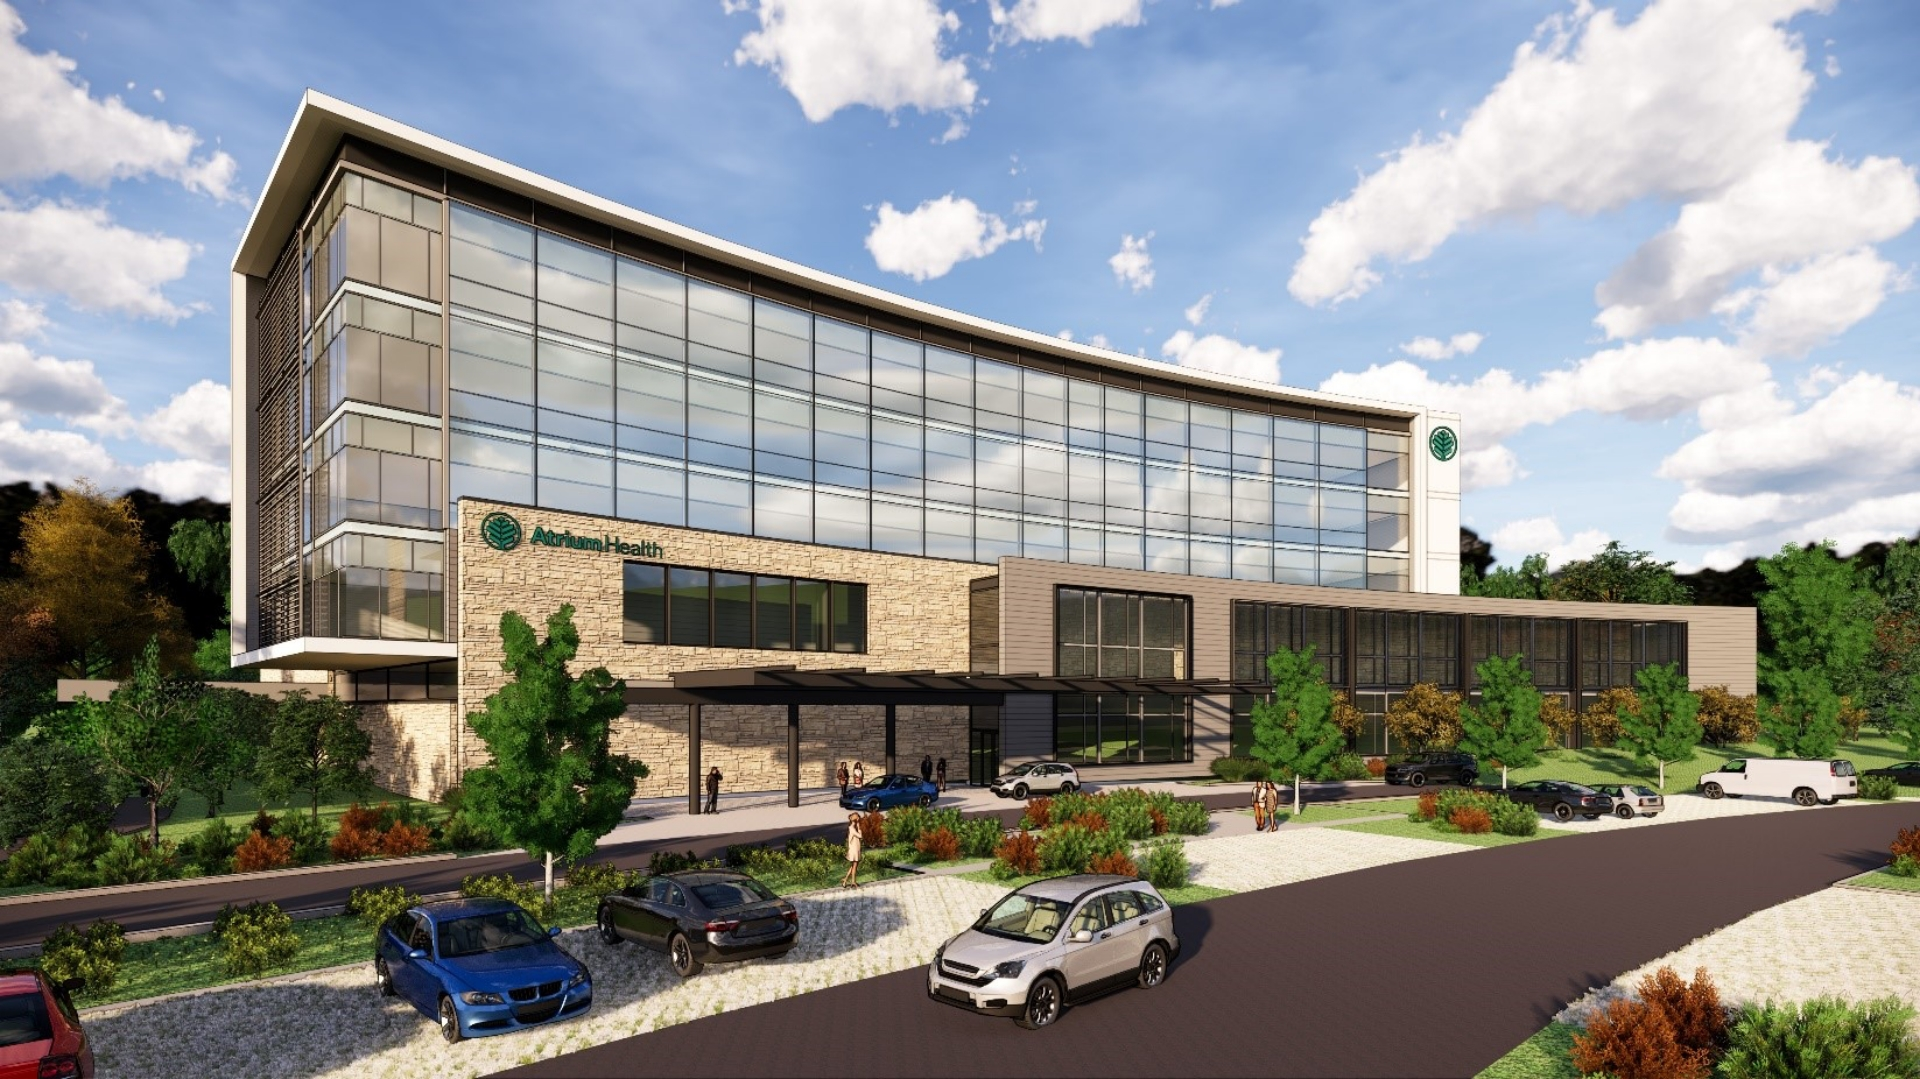 As part of Atrium Health's mission to improve health, elevate hope and advance healing – for all, and in order to bring high quality and convenient access to care for the residents of northern Mecklenburg County, Atrium Health is proposing to build a new hospital called Atrium Health Lake Norman.